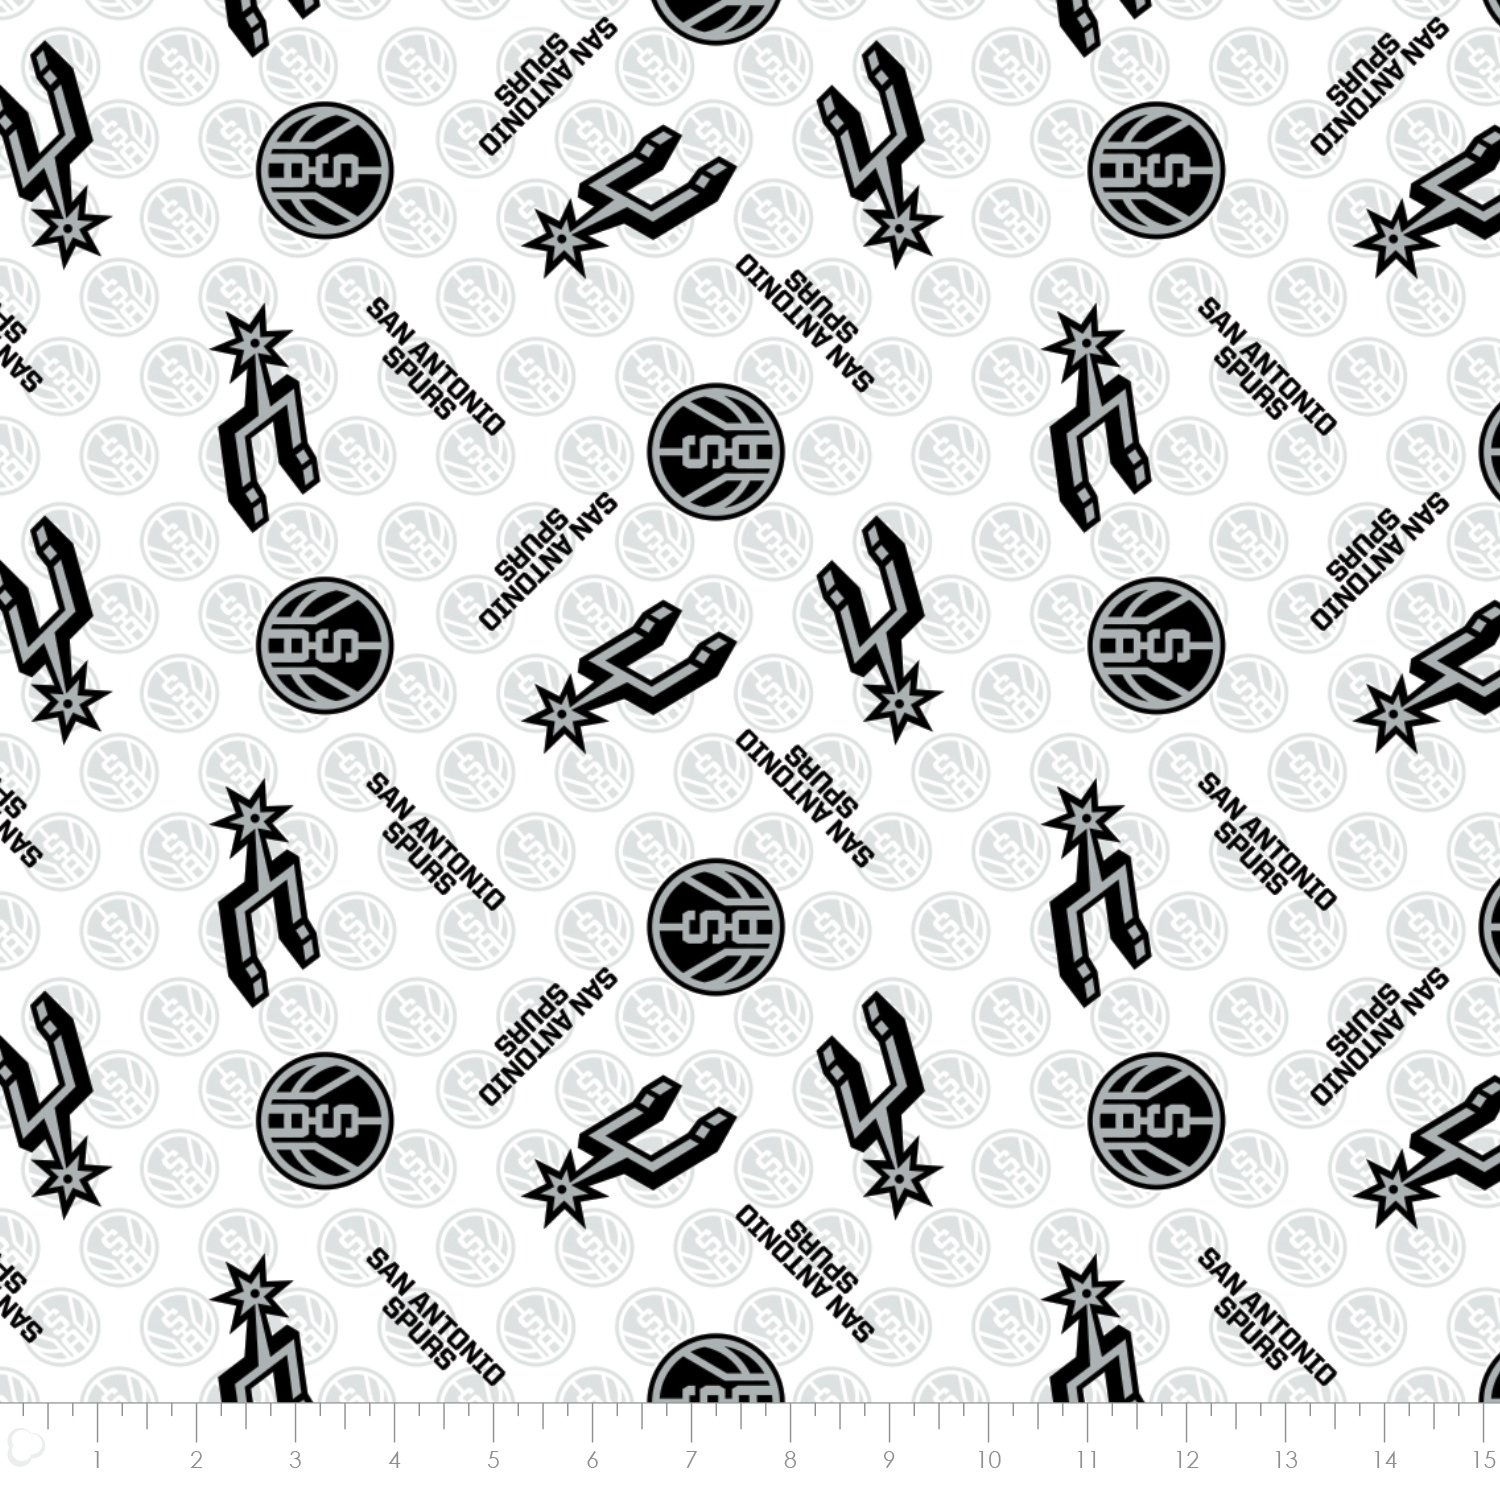 83sas0002_1 San Antonio Spurs Quilting Fabric